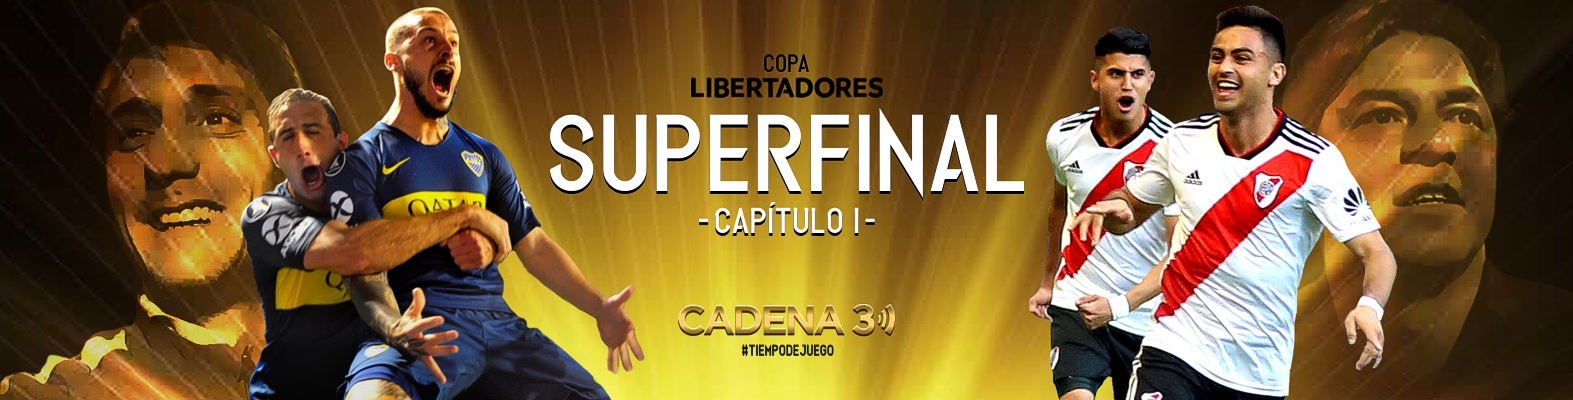 Superfinal Capítulo 1